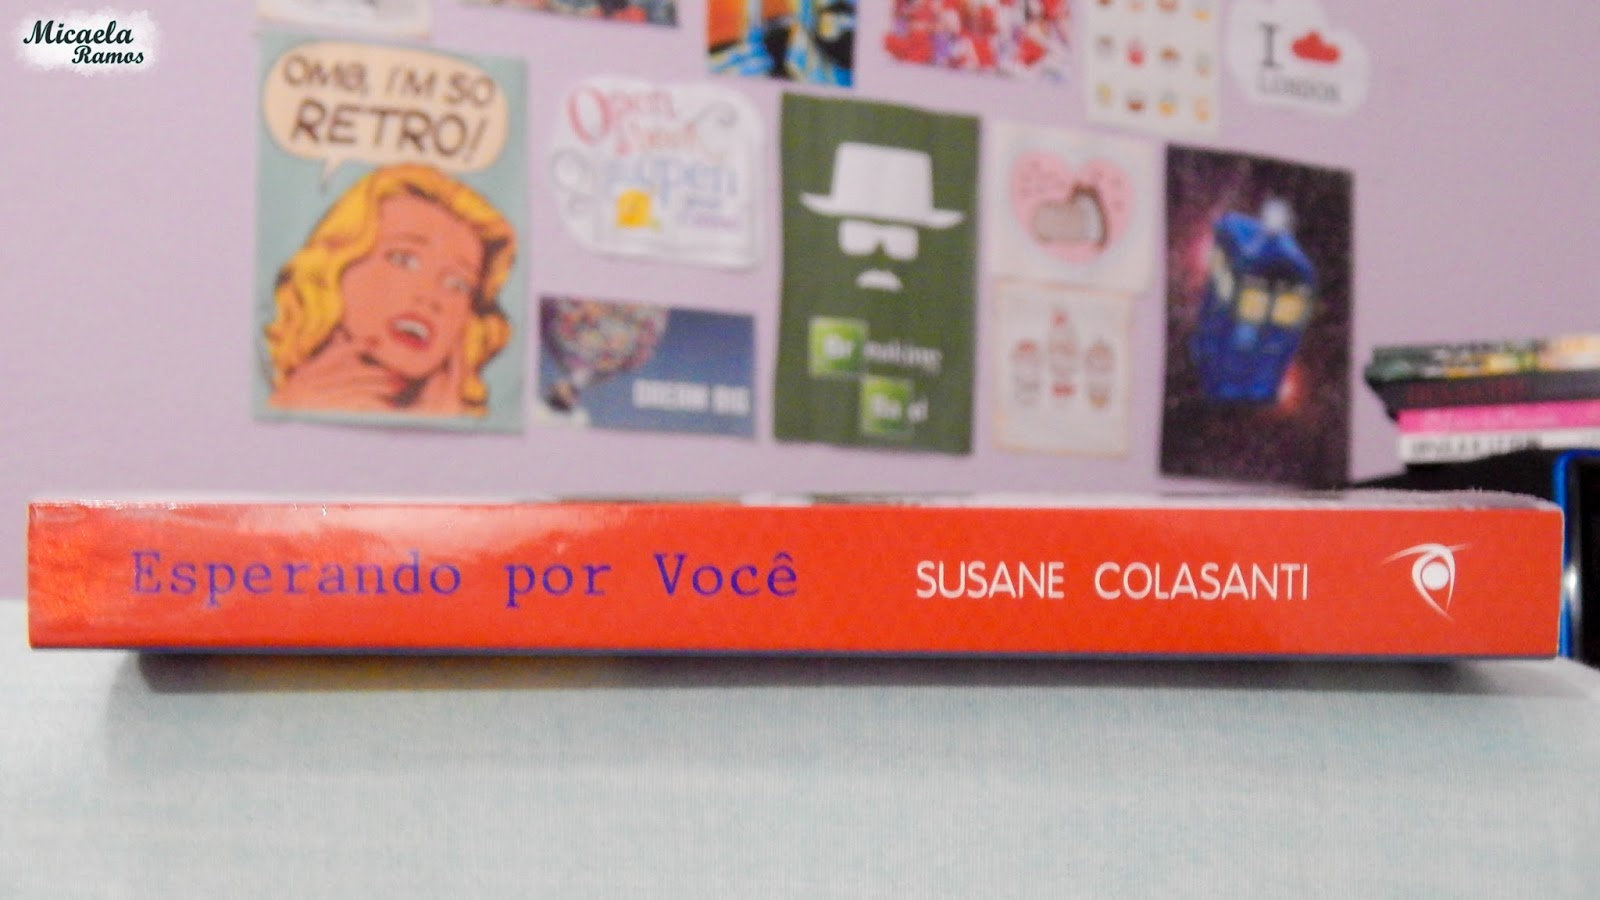 fotografia, photography, livro, book, susane colasanti, esperando por voce, waiting for you, micaela ramos, wanderlust,